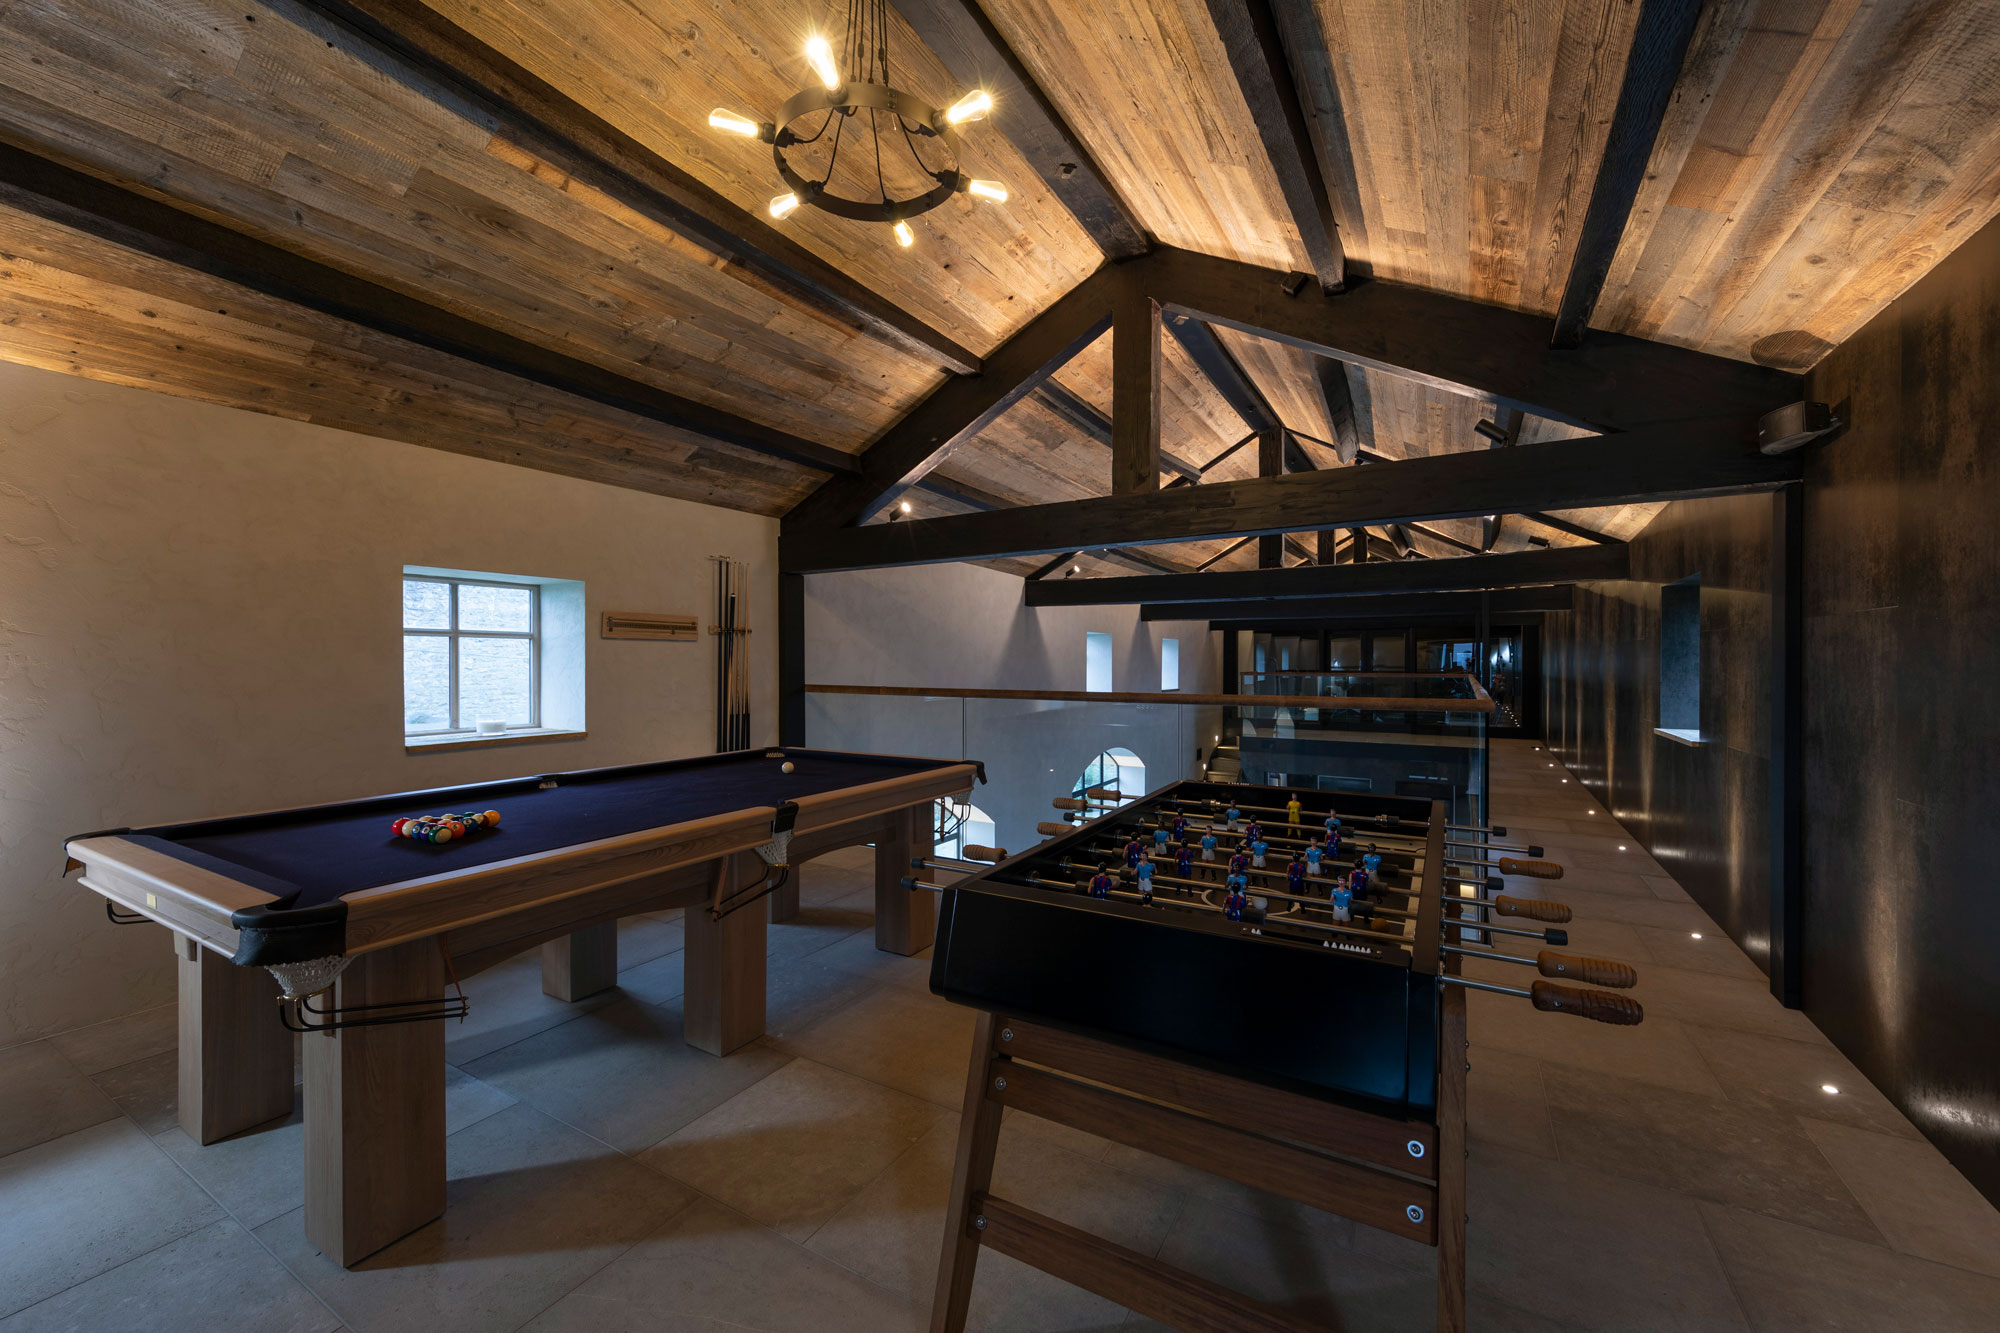 Pool table and foosball table in large room with tiled floor on wood clad ceiling